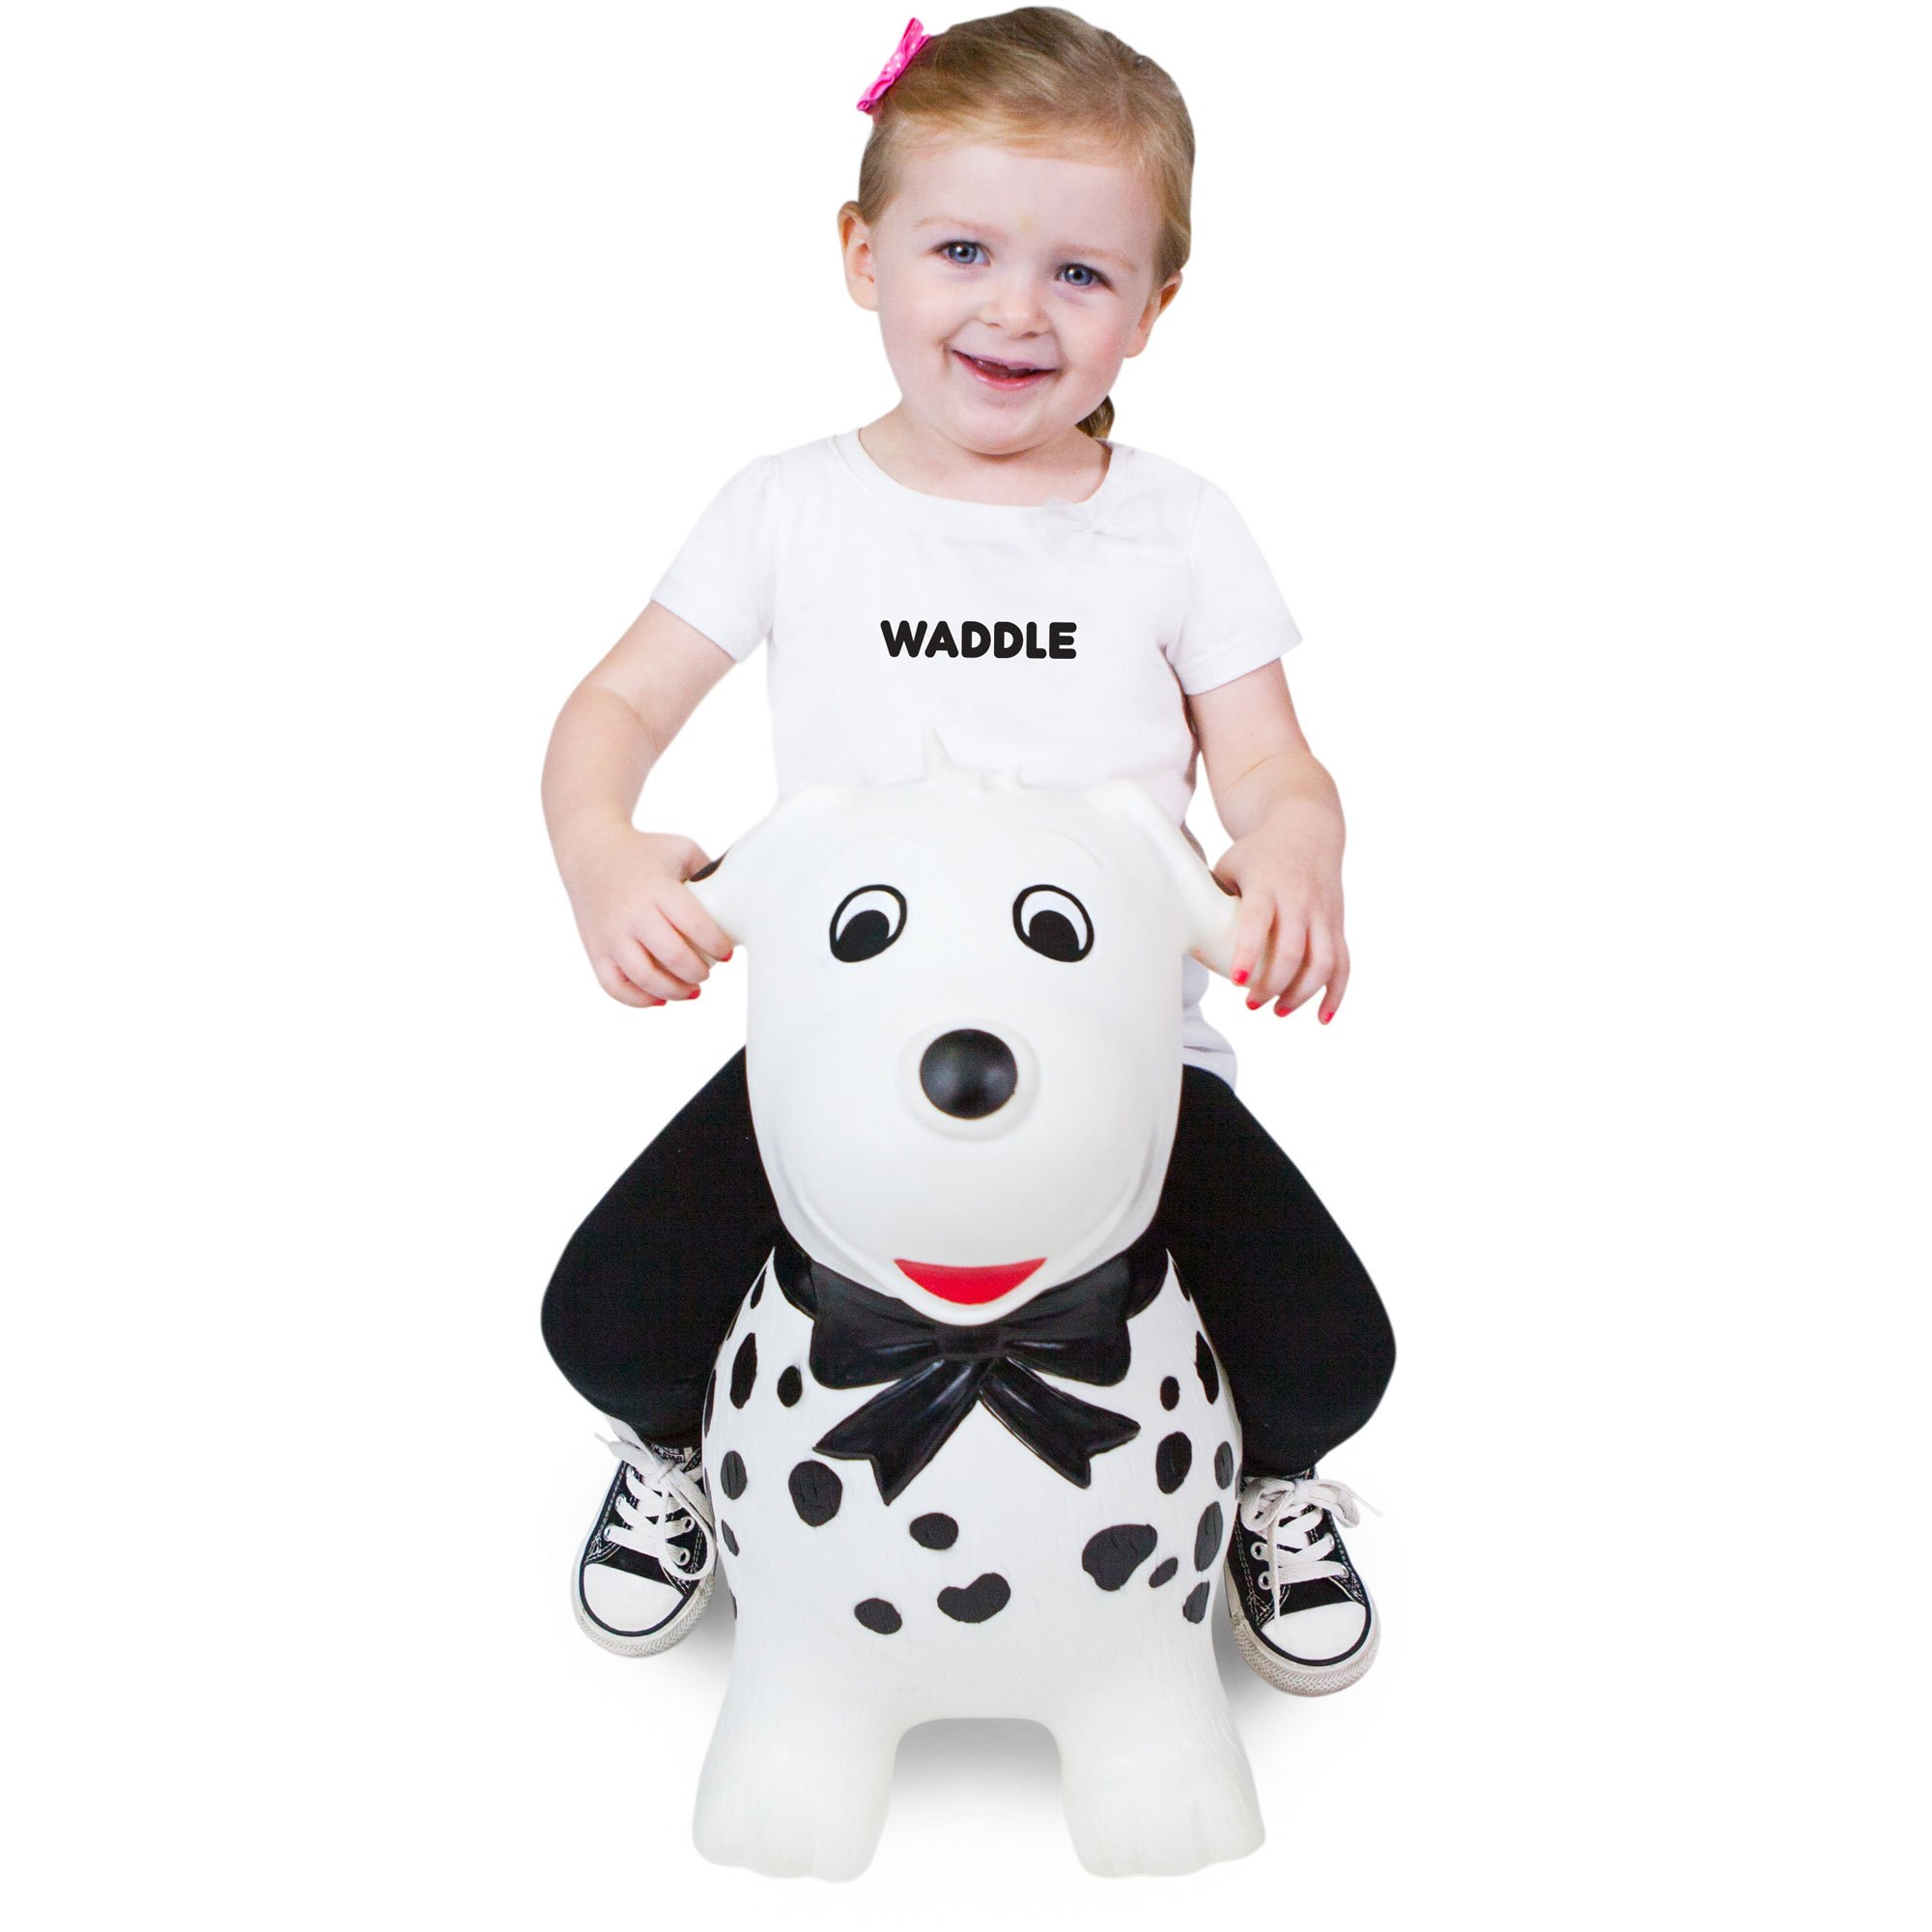 WADDLE Favorite Dog Toy Hopper Ride On Inflatable Animal Bouncer Kids Bouncy Horse for Boys Or Girls Interactive Stimulation Sensory Jumping Toys SpotsDalmatian For Toddlers and Children Gift Idea